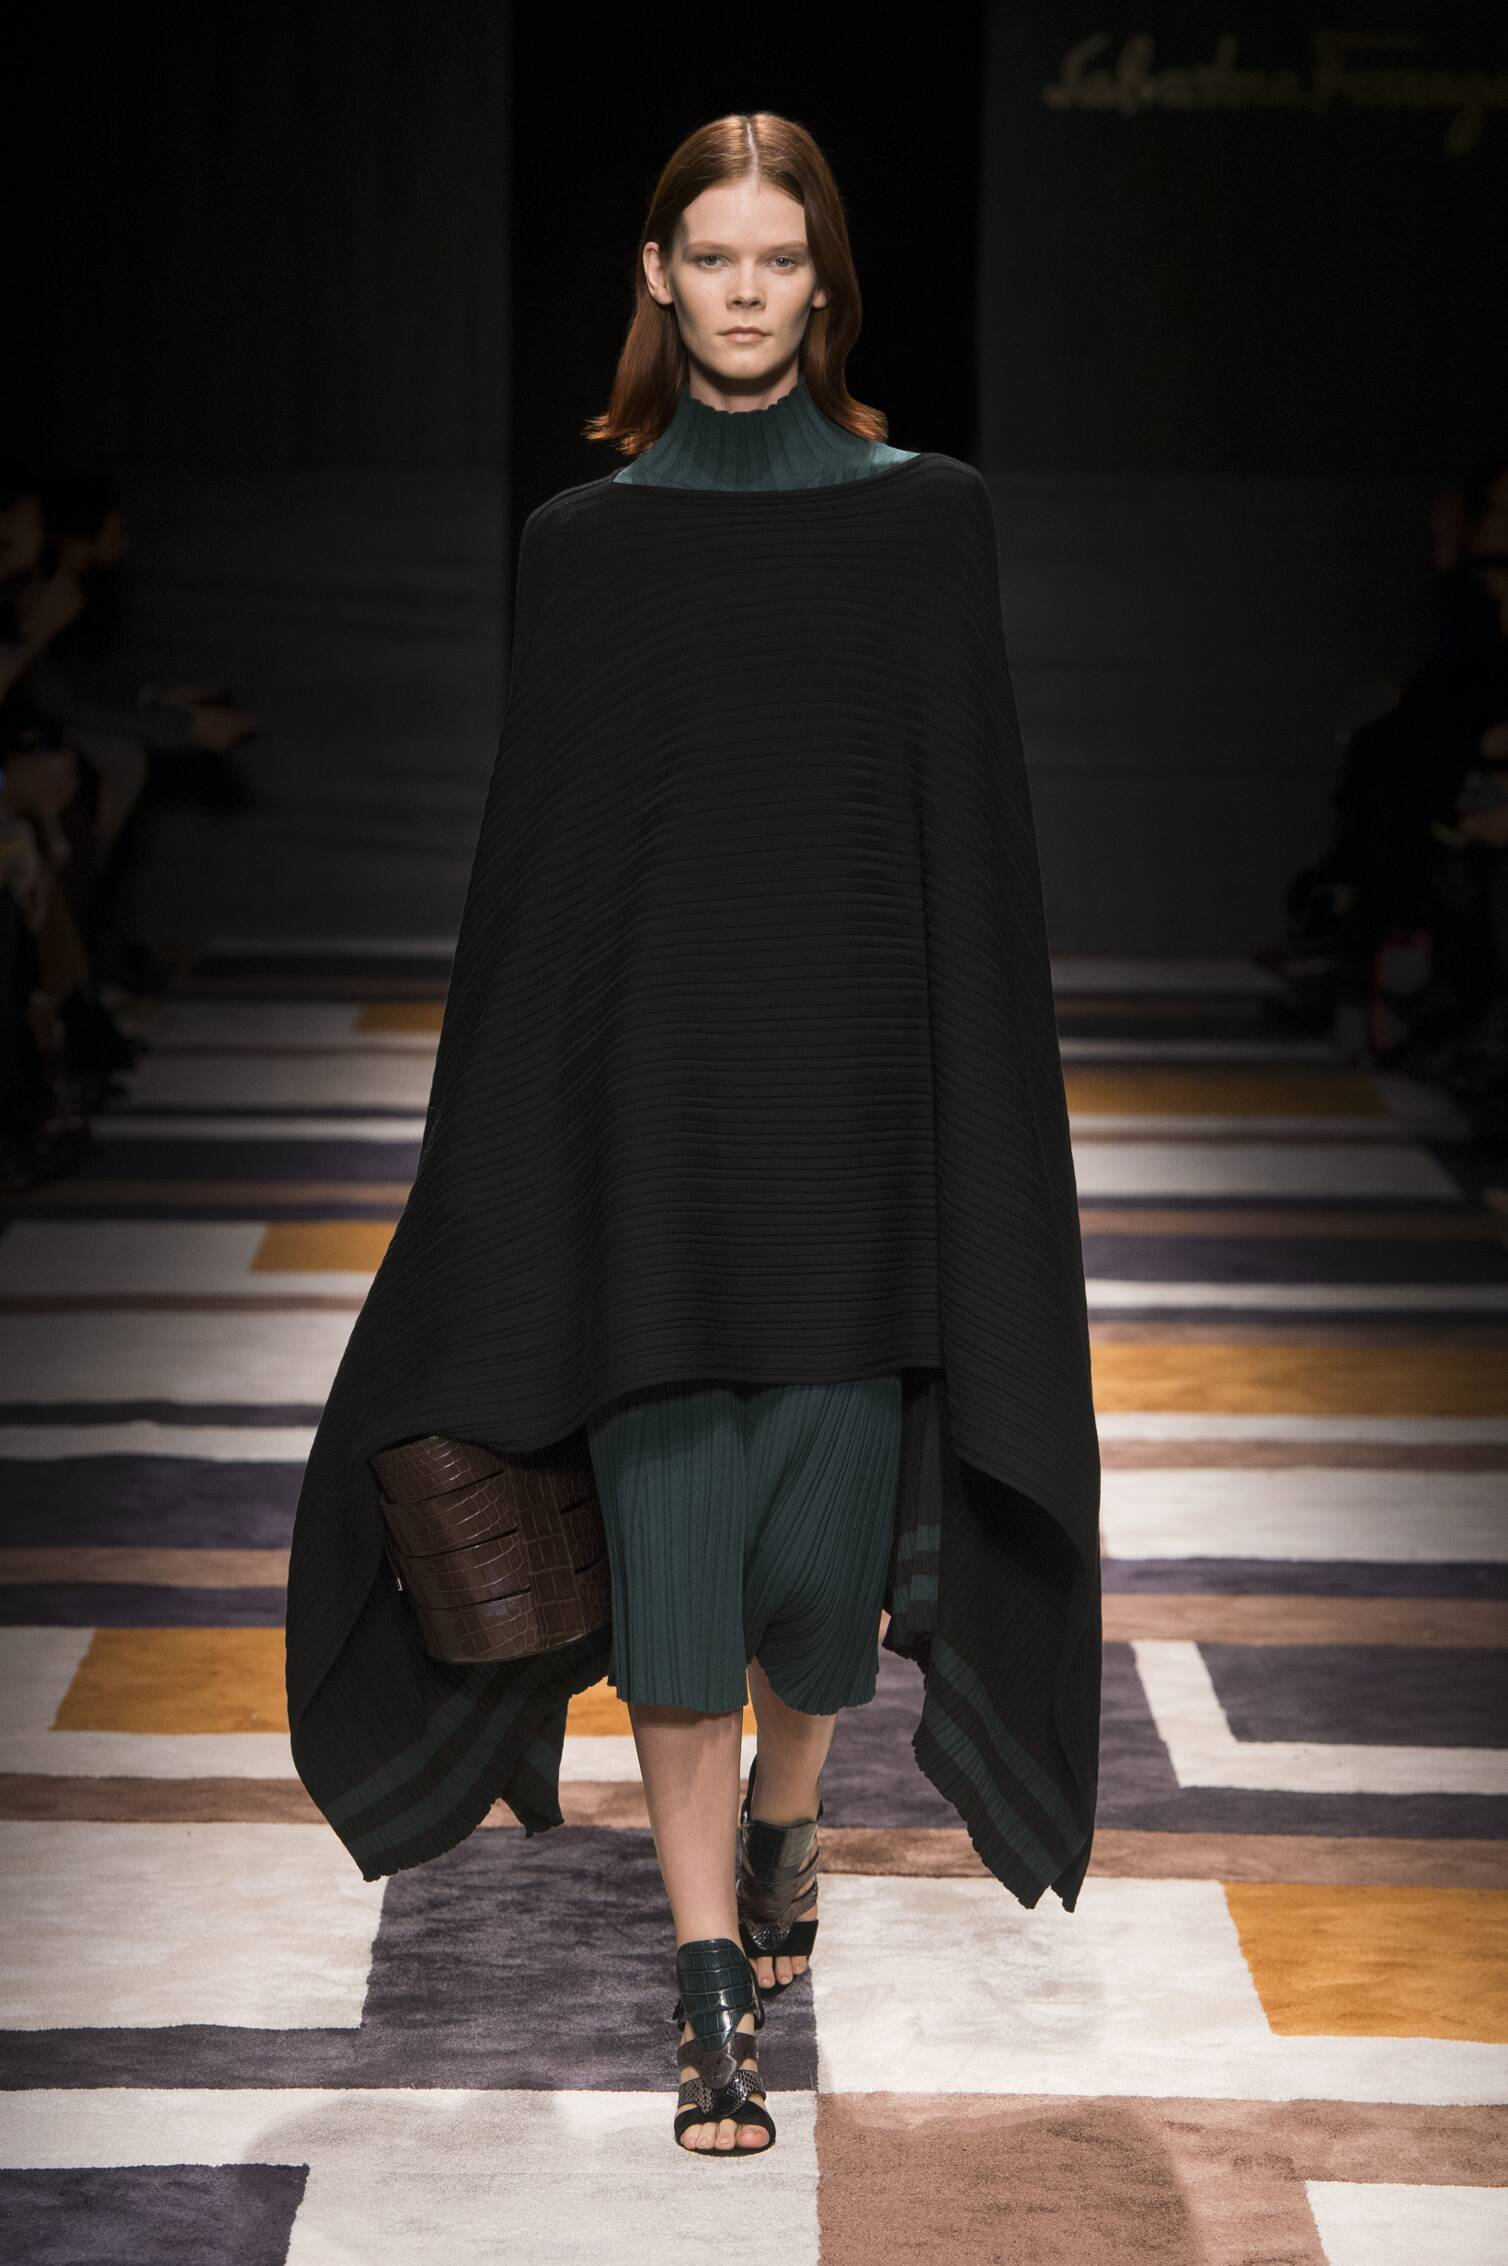 Catwalk Salvatore Ferragamo Womenswear Collection Winter 2015